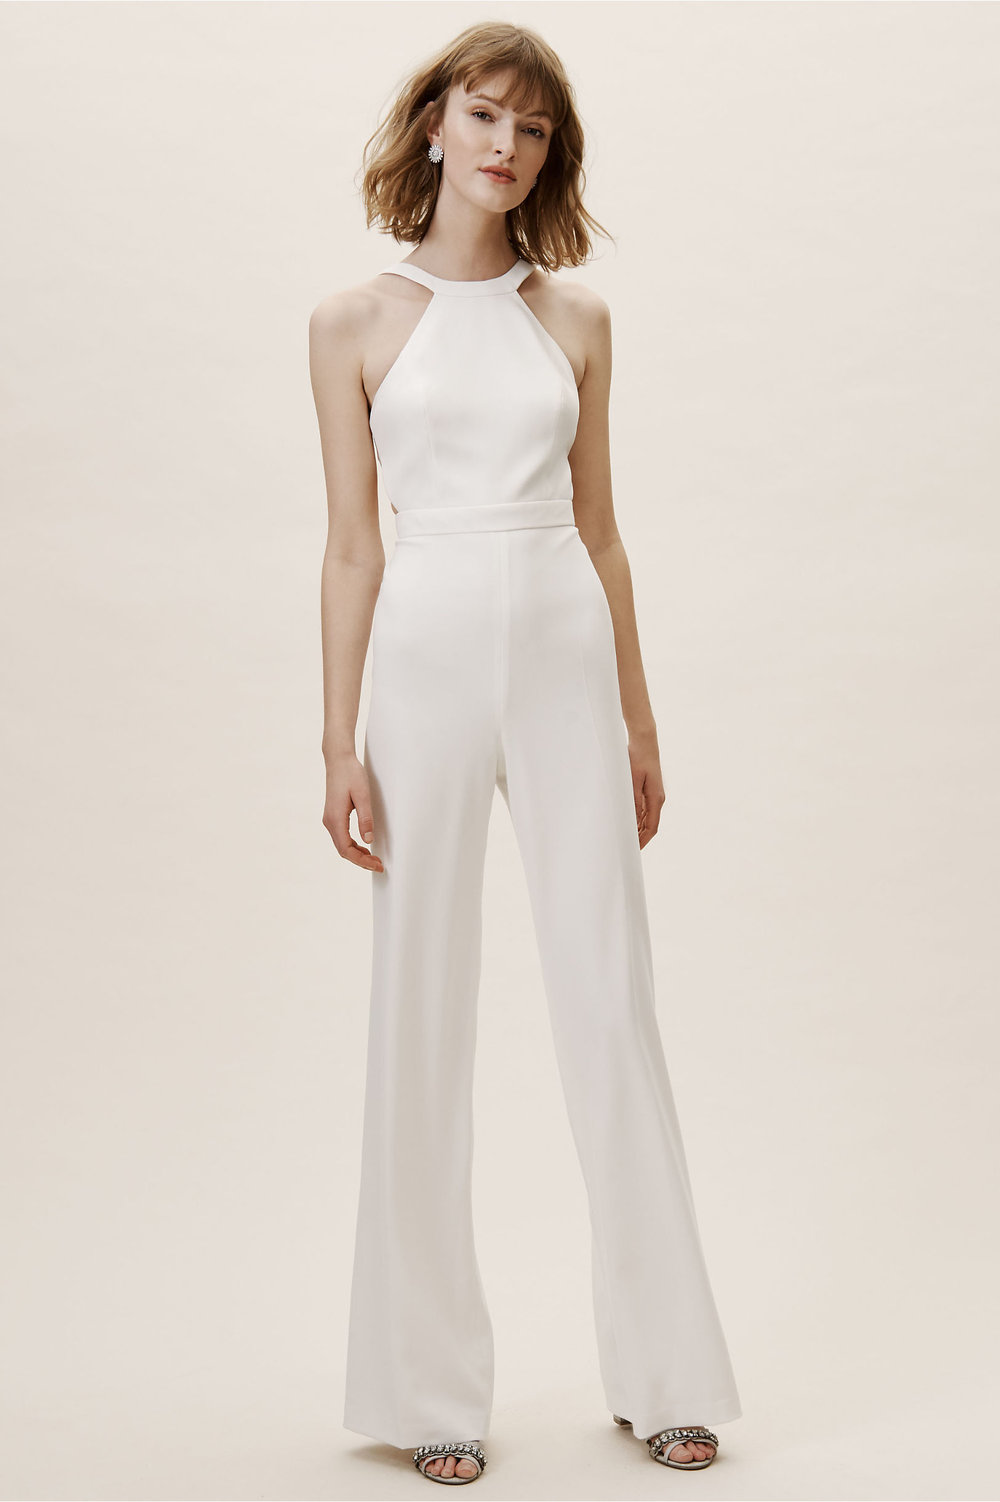 ivory jumpsuit with halter top front view bhldn spring 2019 wedding collection